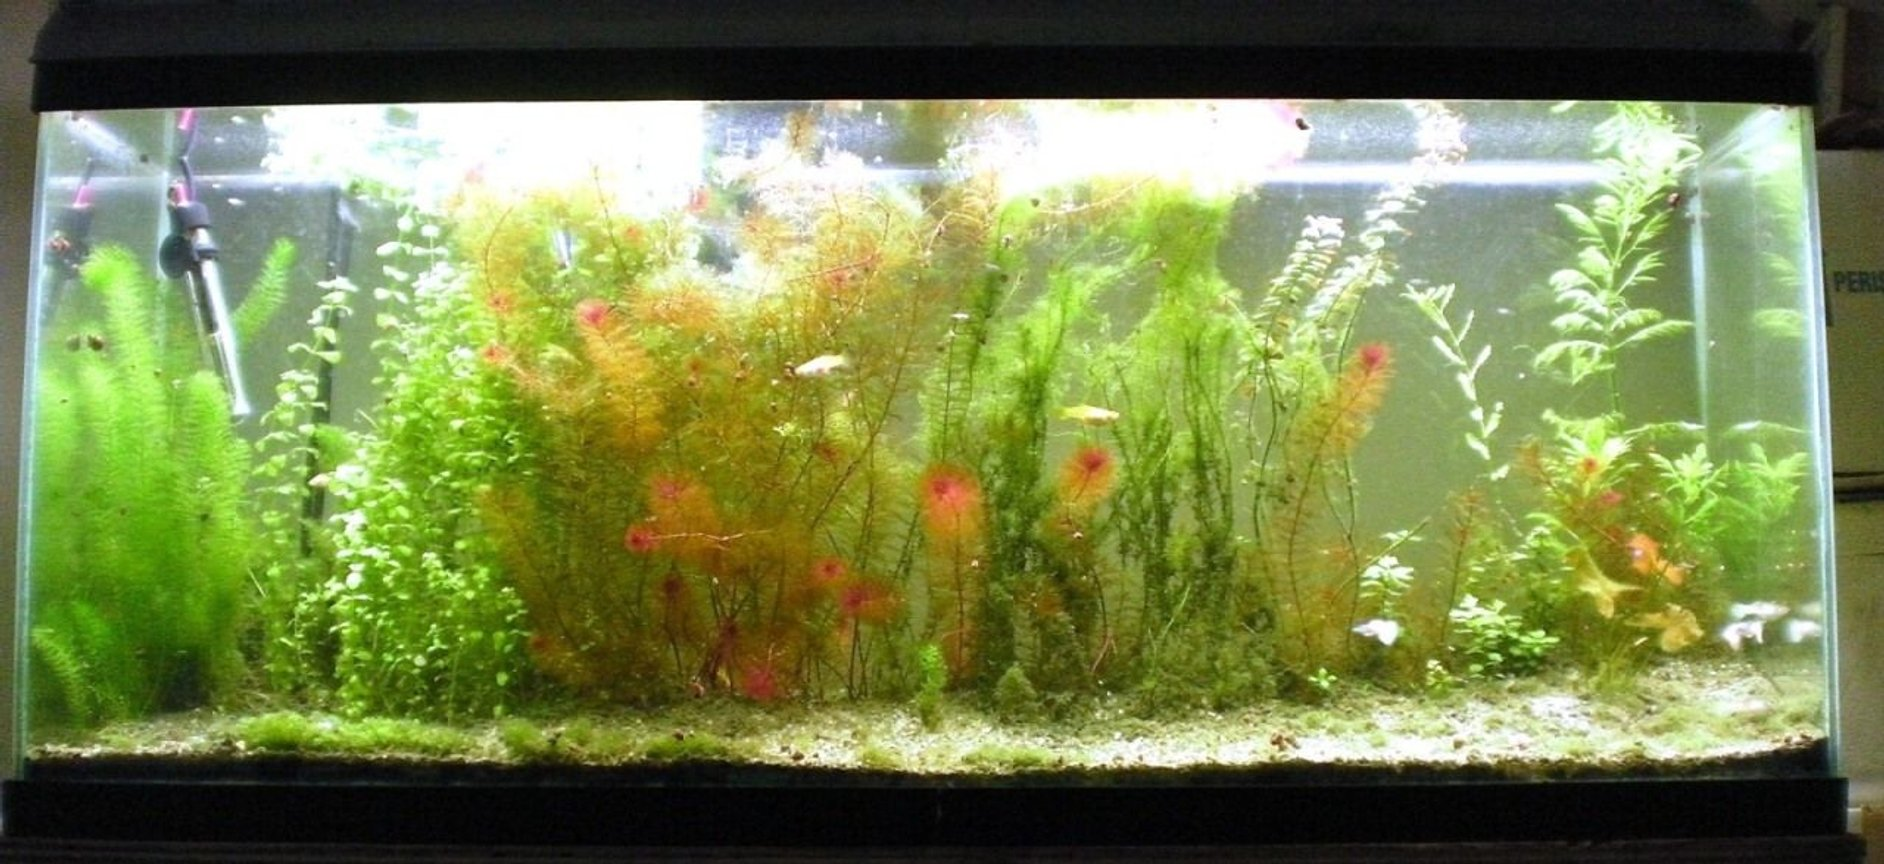 75 gallons freshwater fish tank (mostly fish and non-living decorations) - 55 gallon aquarium